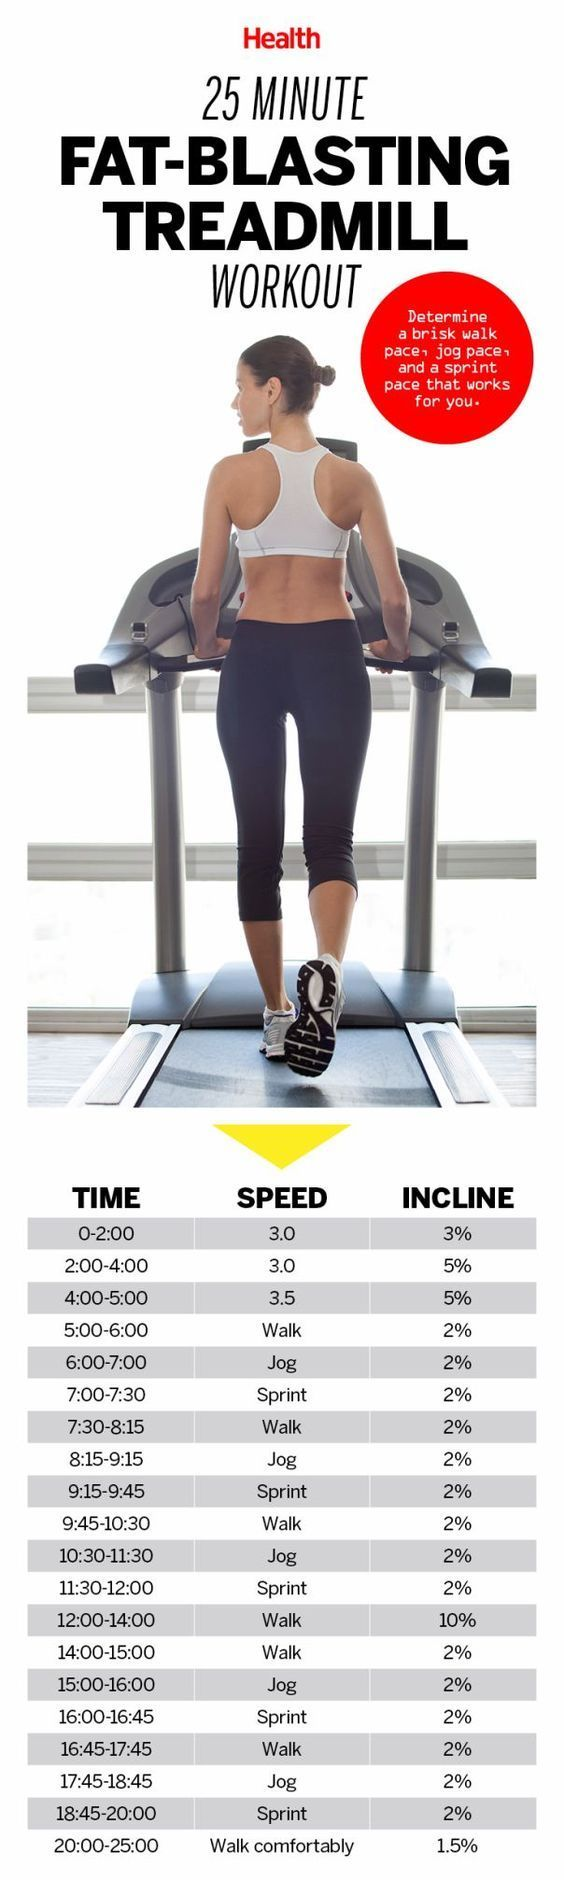 How to build muscle and burn fat with our tips and this 25 minute fat-burning treadmill workout. Find all the fitness tips you need to get prepped for your next pageant at ThePageantPlanet.com